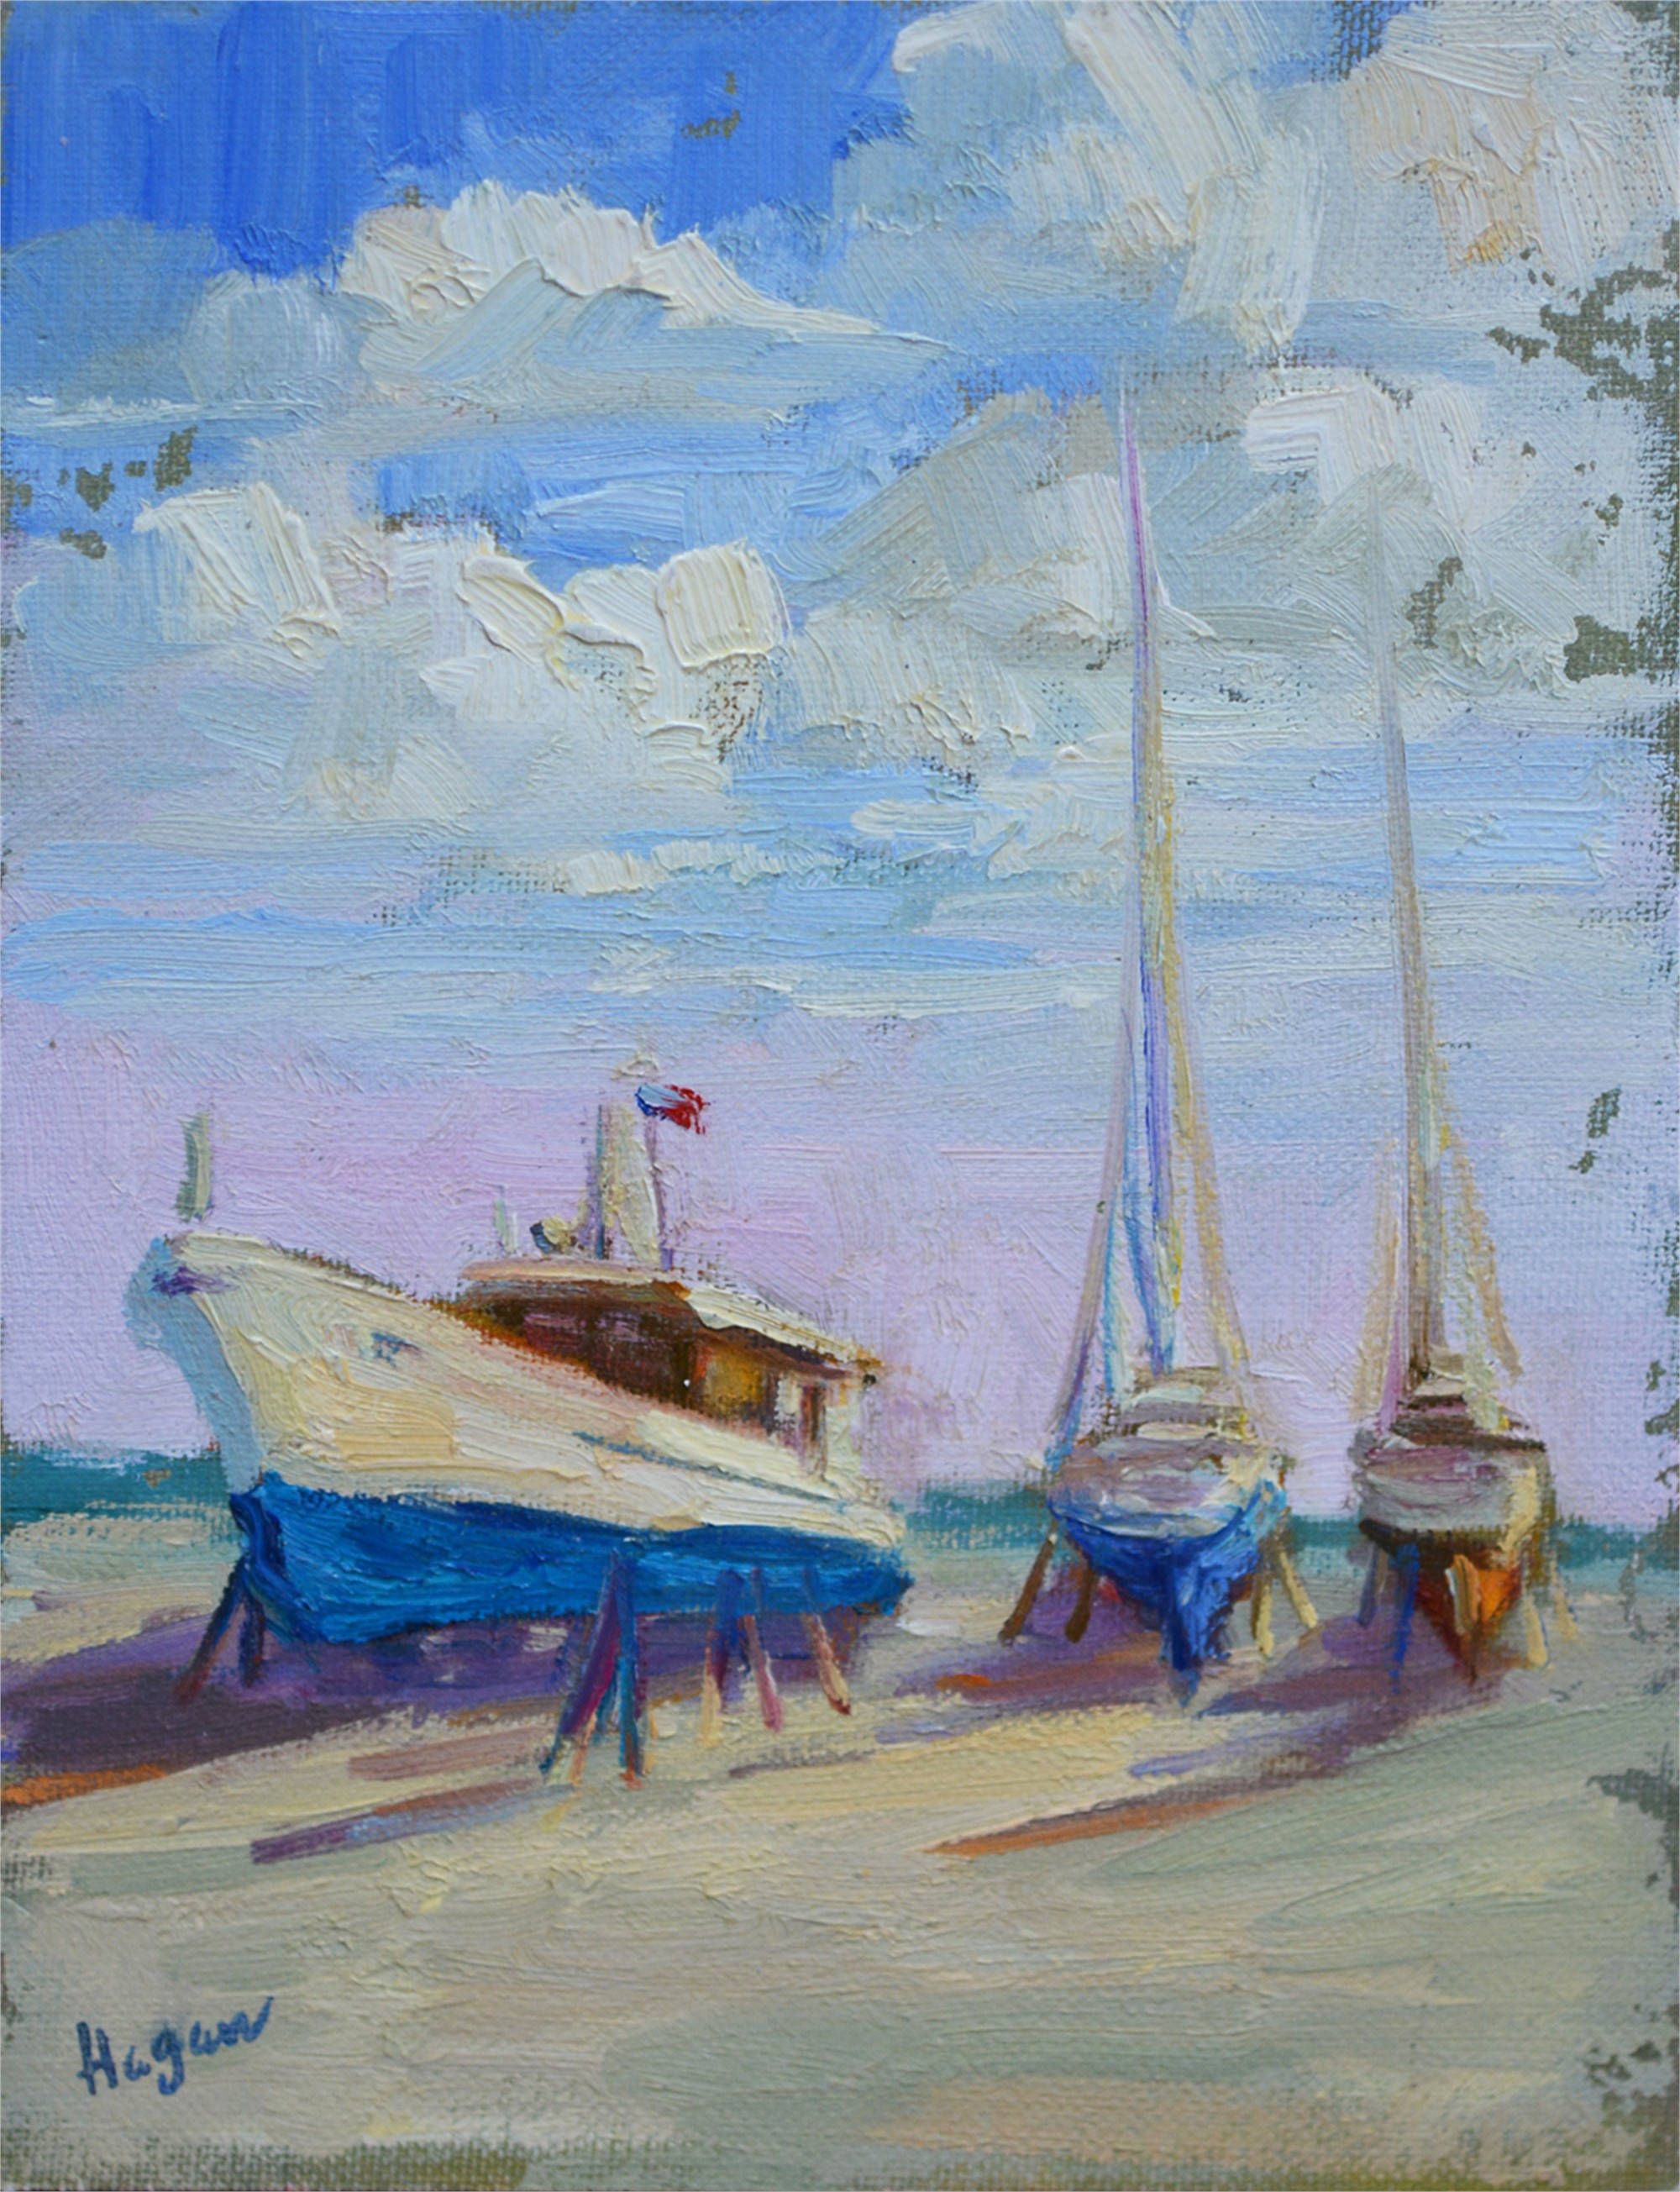 Boatyard Blues by Karen Hewitt Hagan